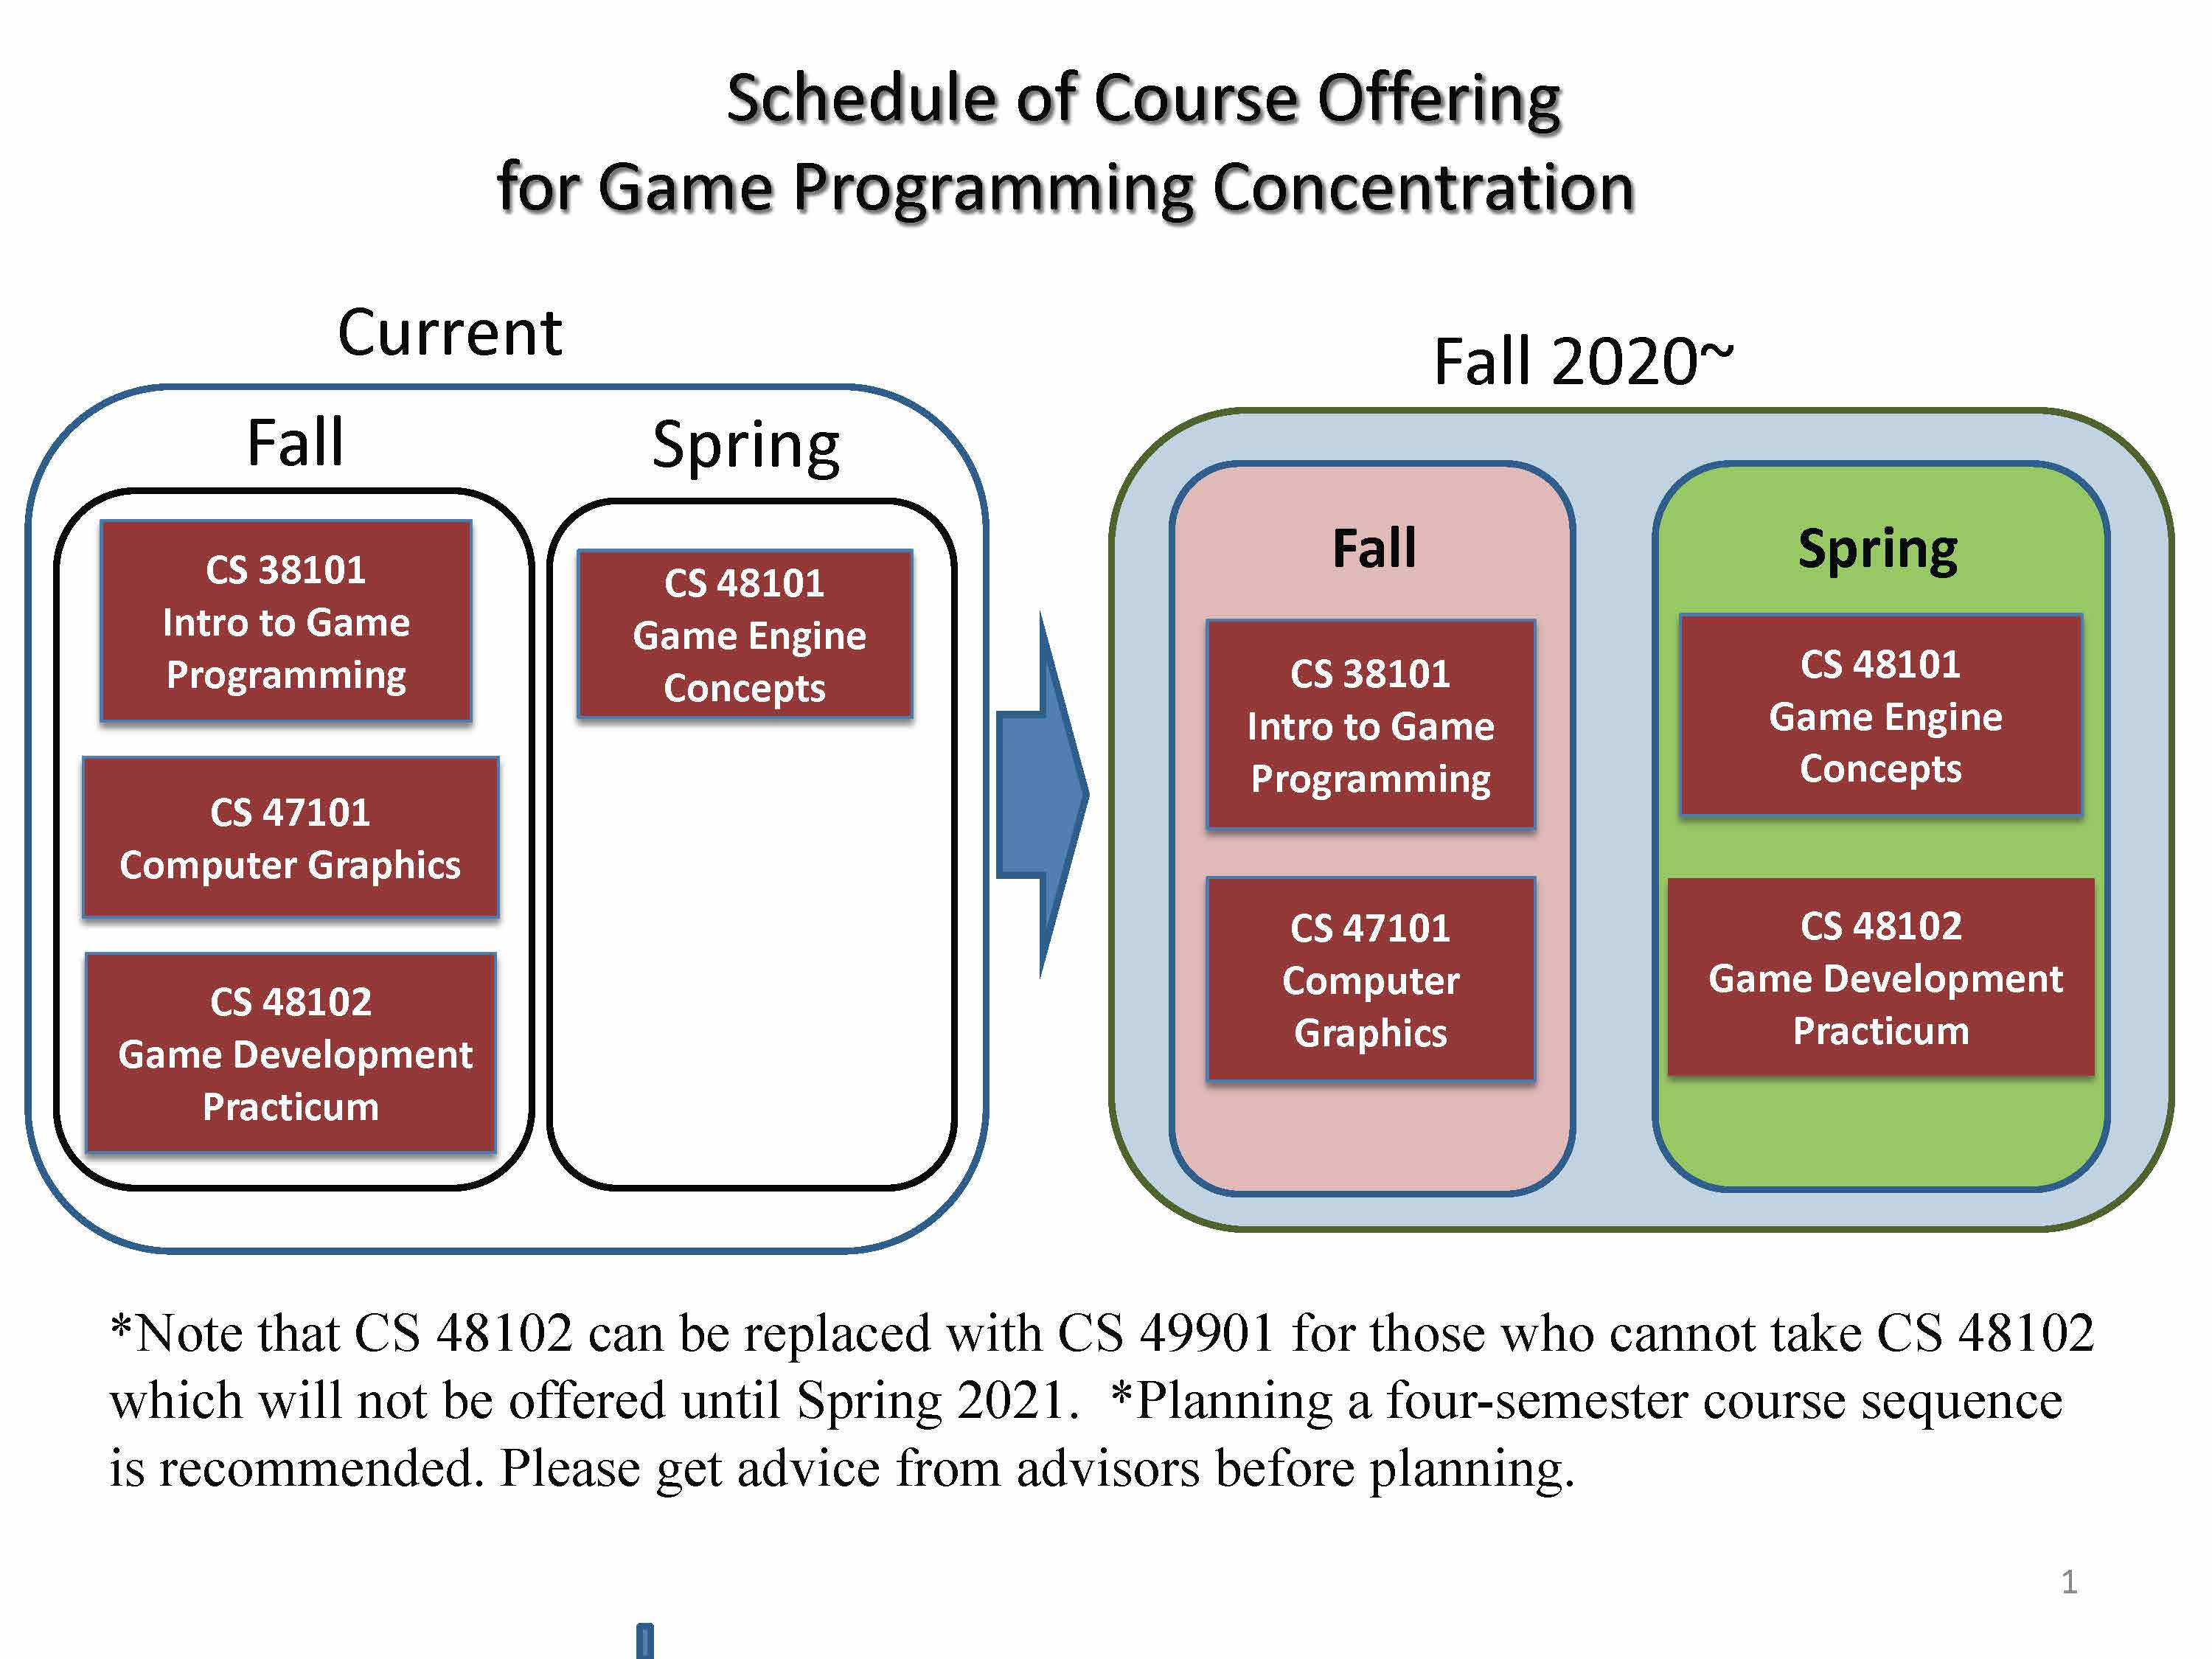 Game Programming - Schedule of Course Offerings